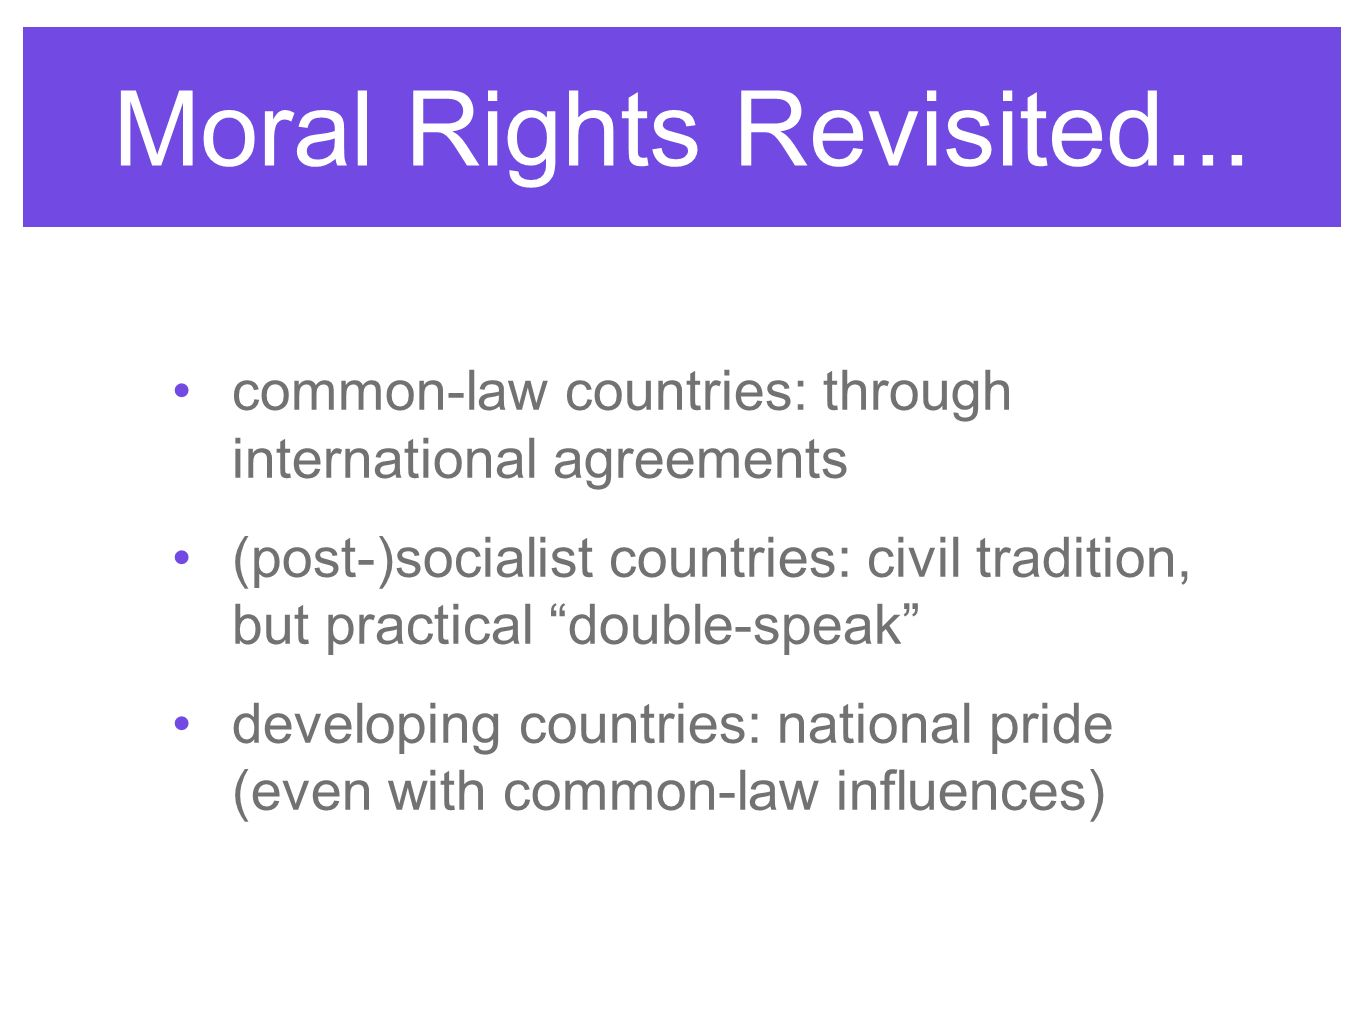 Moral Rights Revisited...